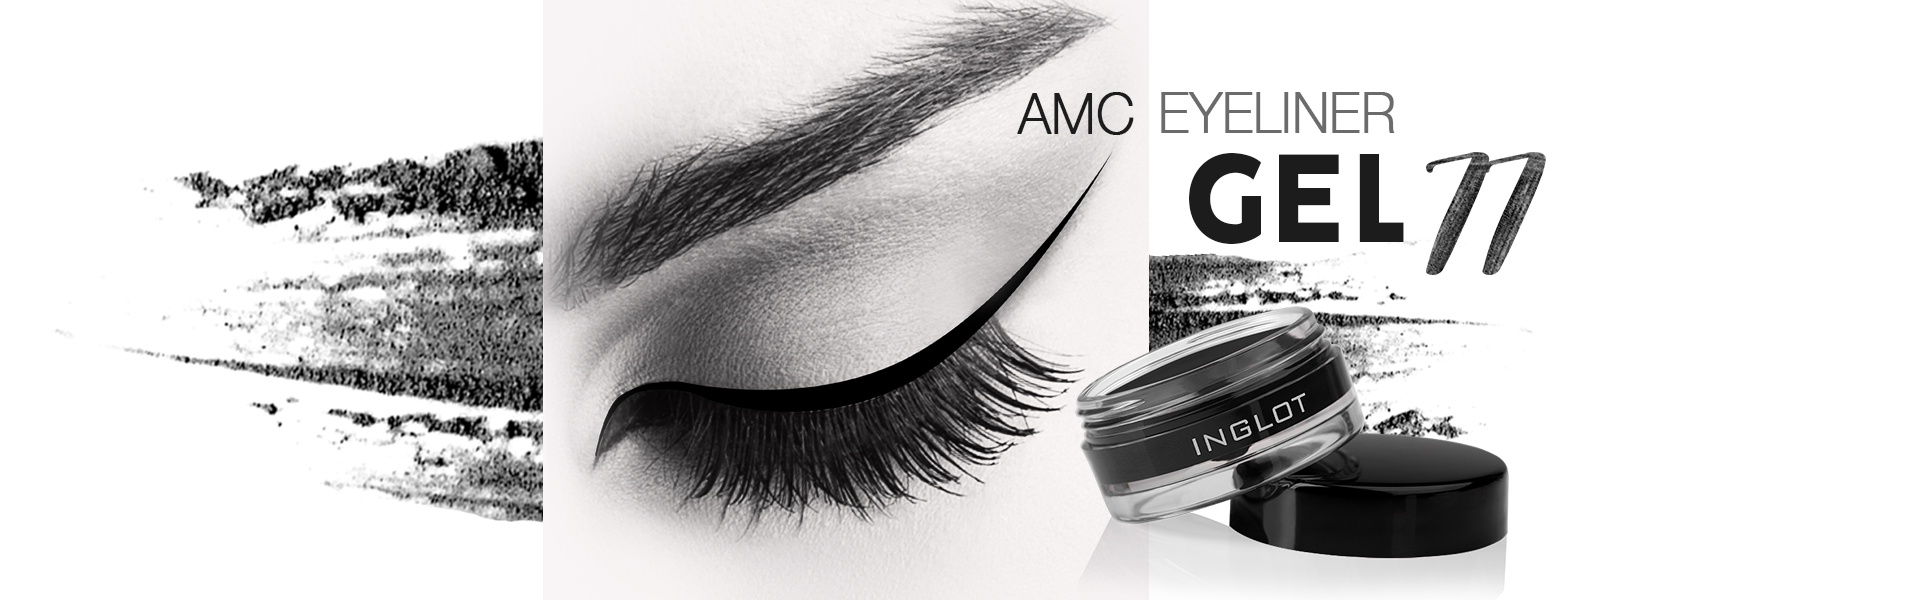 19-05-06-slider---amc-eyeliner-gel-77-en-3